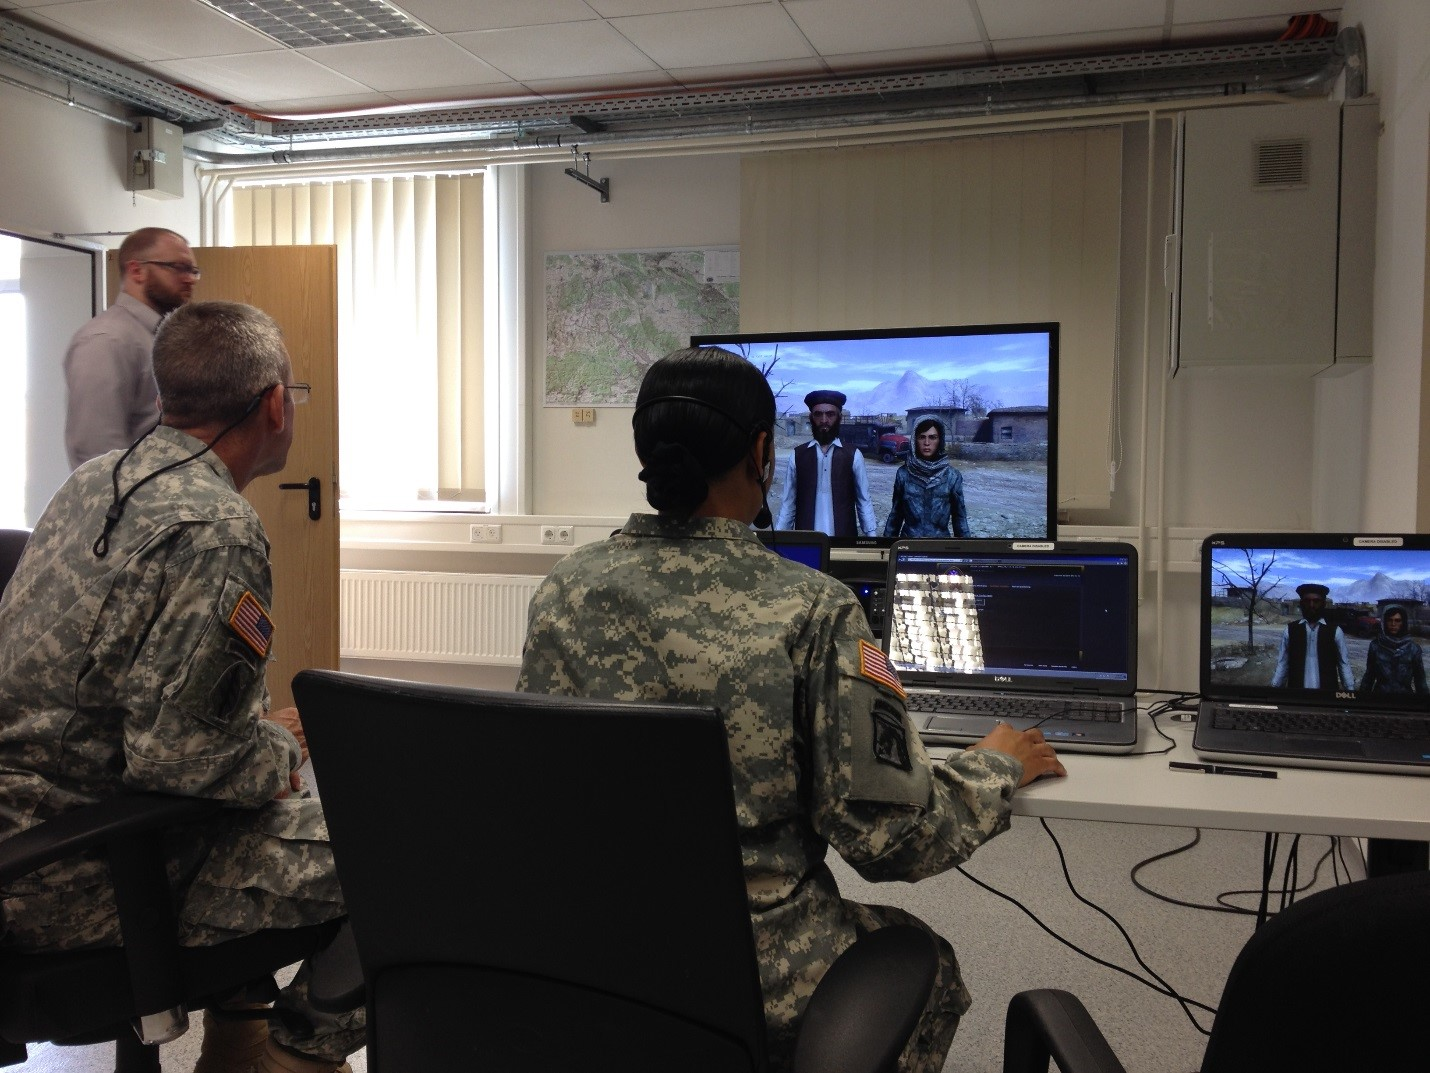 Soldiers use tactical questioning system with VBS. Credit: US Army